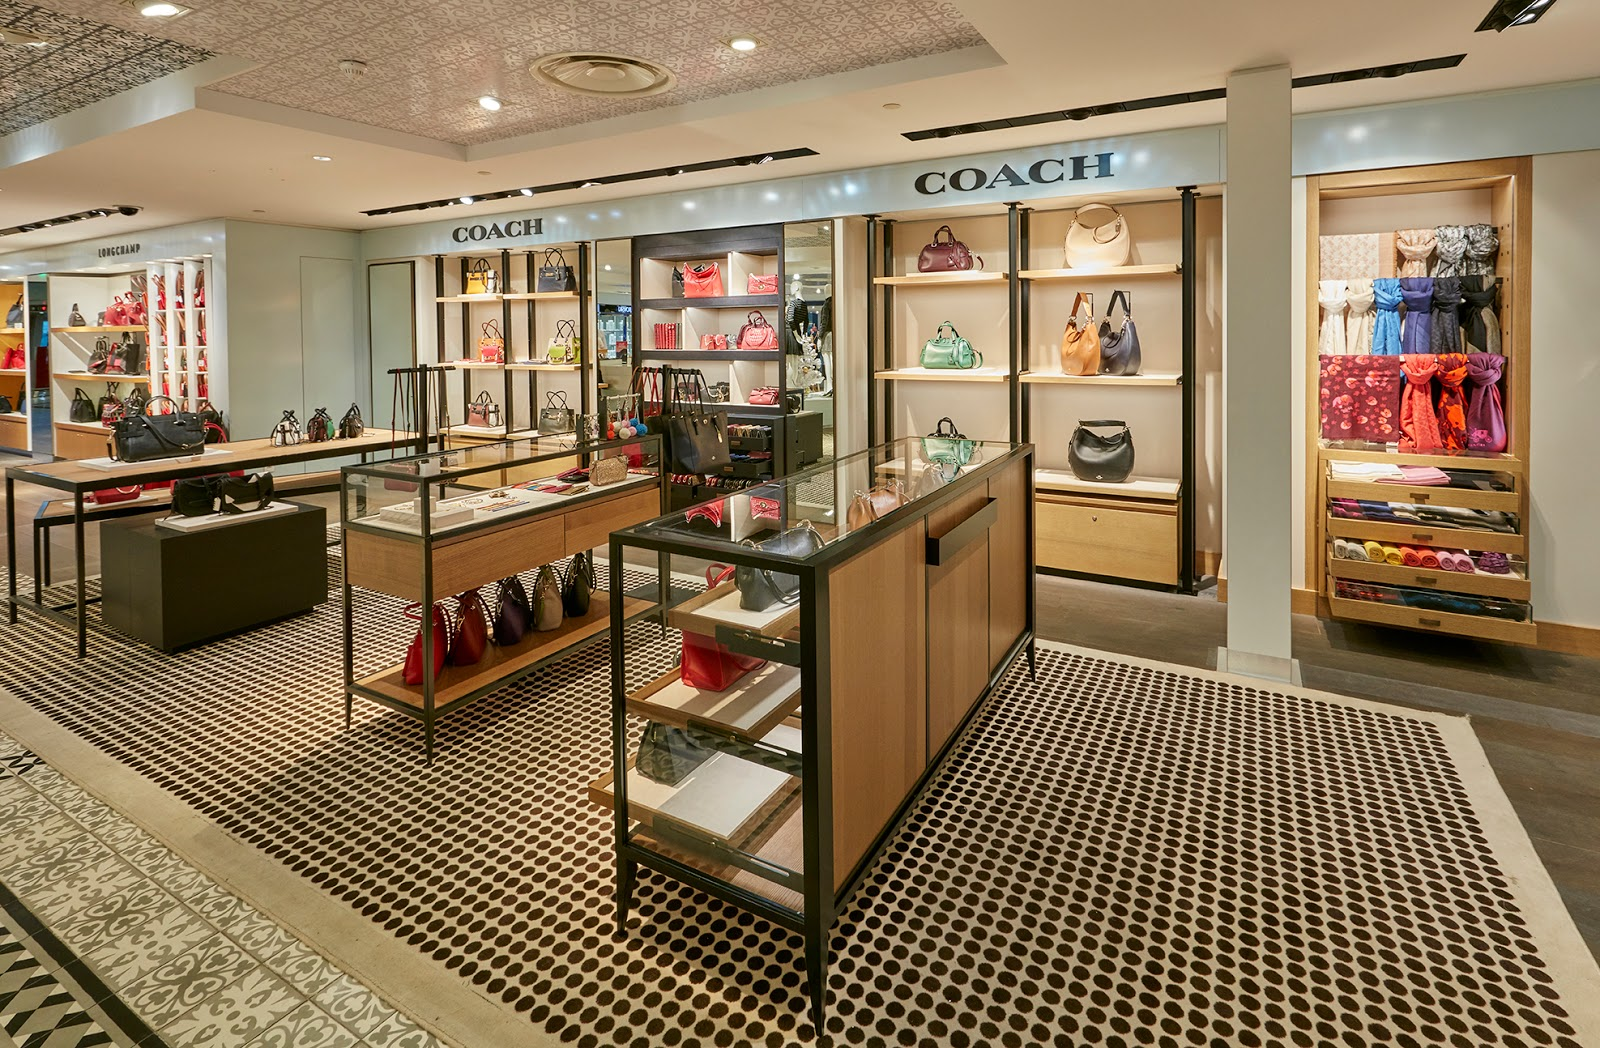 Moderne Stores Mj Rabbit Coach Debuts Modern Luxury Shops In Paris Airport